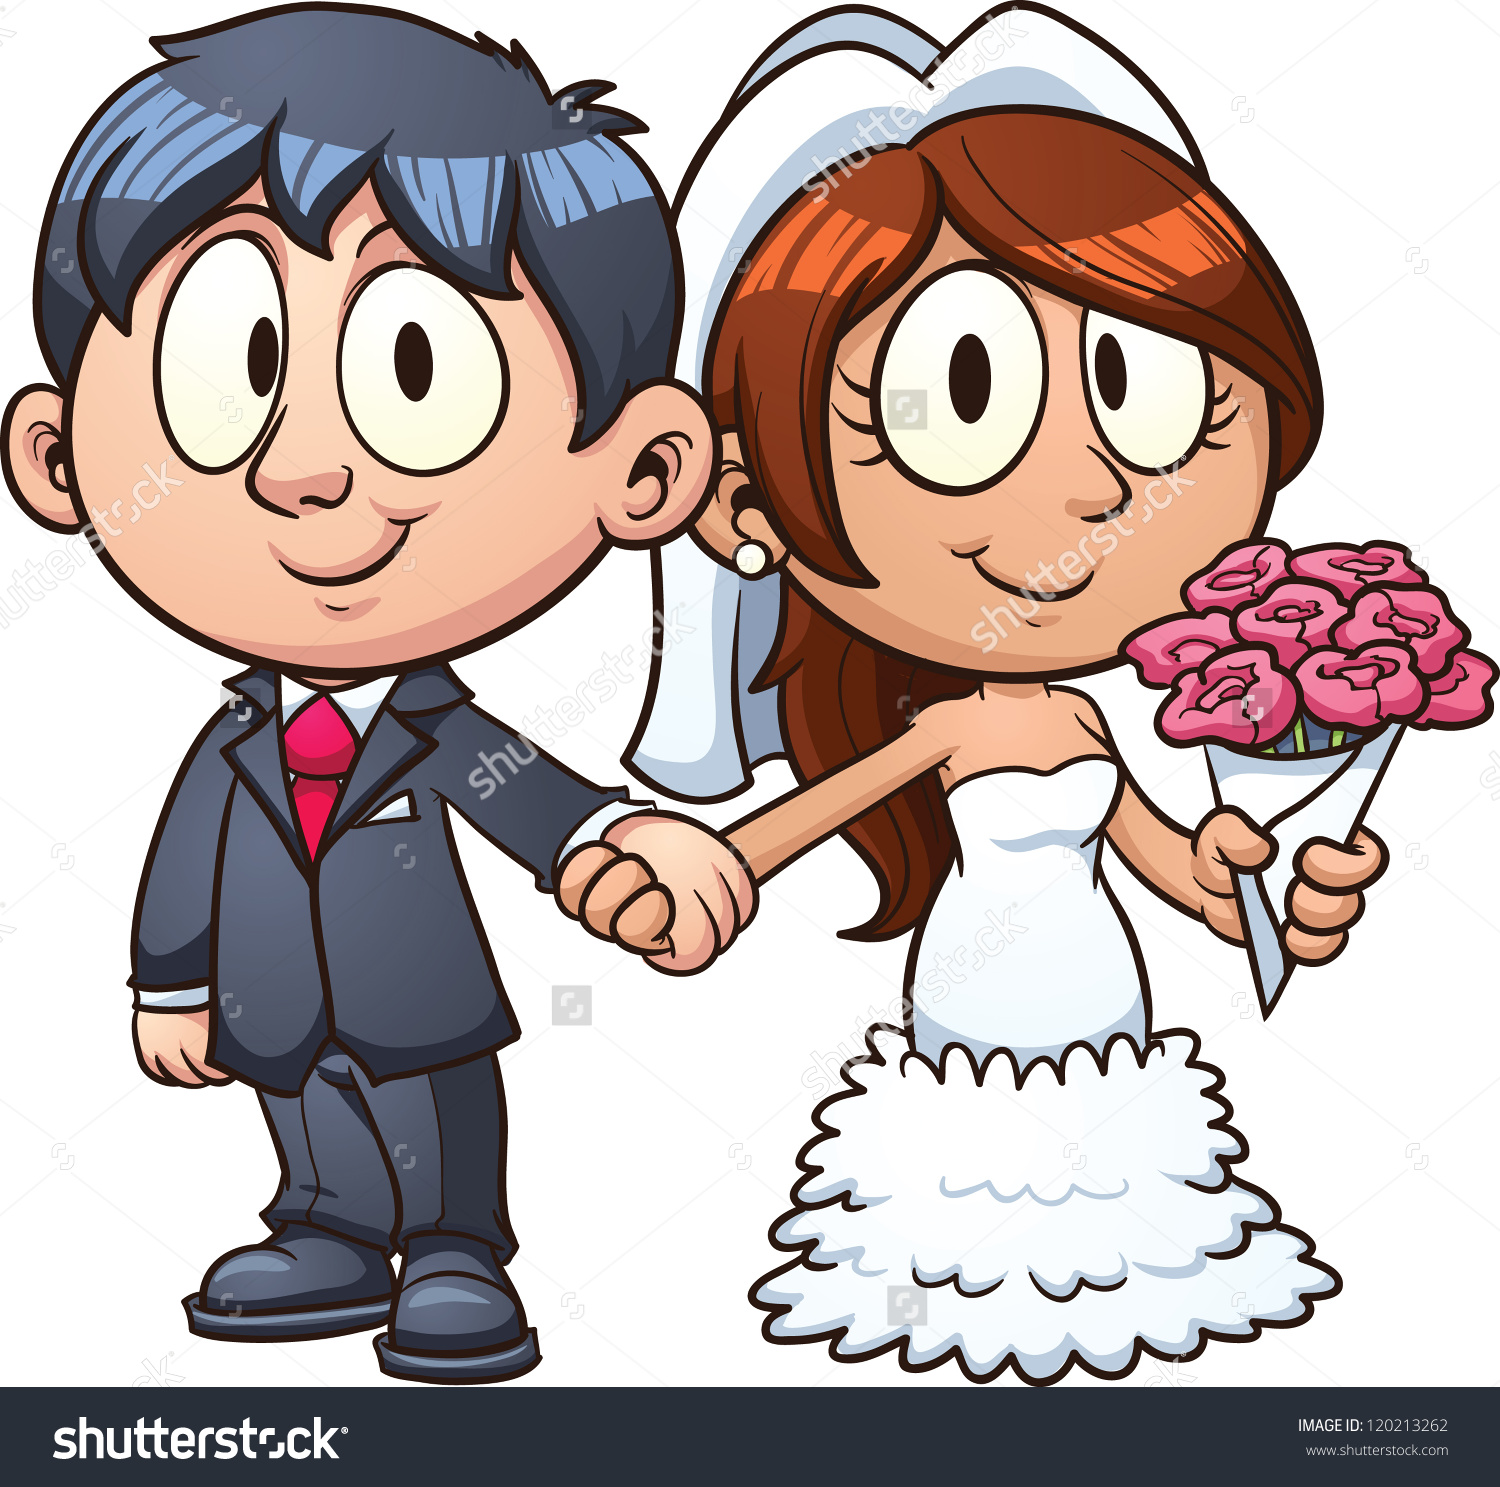 hight resolution of cartoon bride and groom vect bride and groom clipart